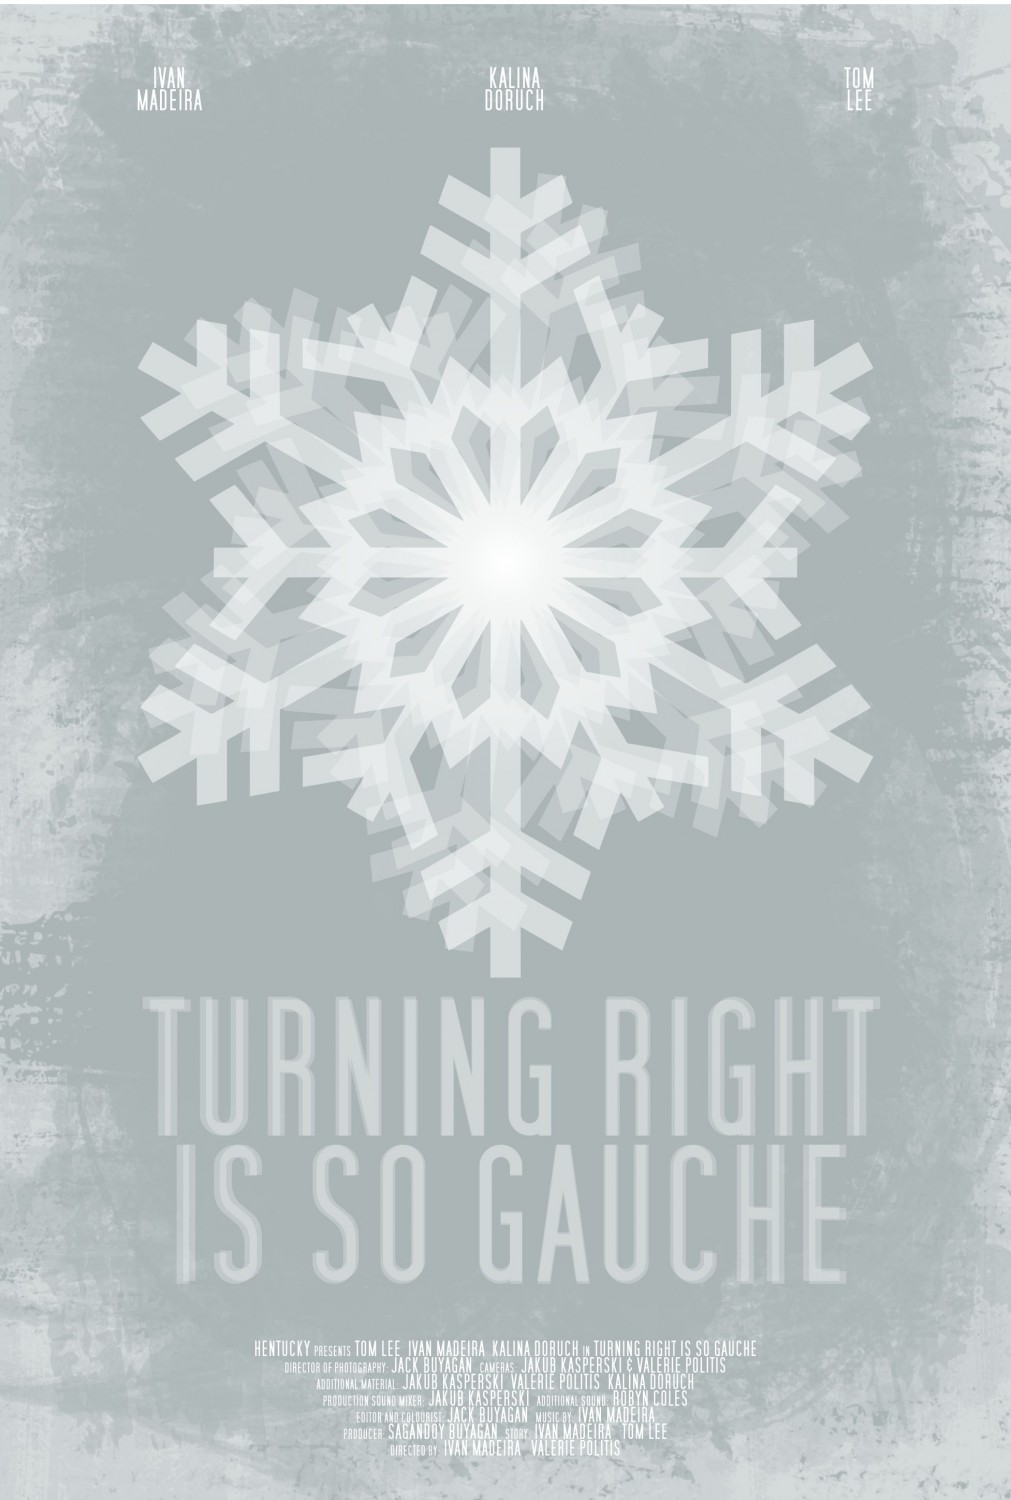 Productionmark-Services-Film-Poster-Design-Short-Film-Turning-Right-Is-So-Gauche